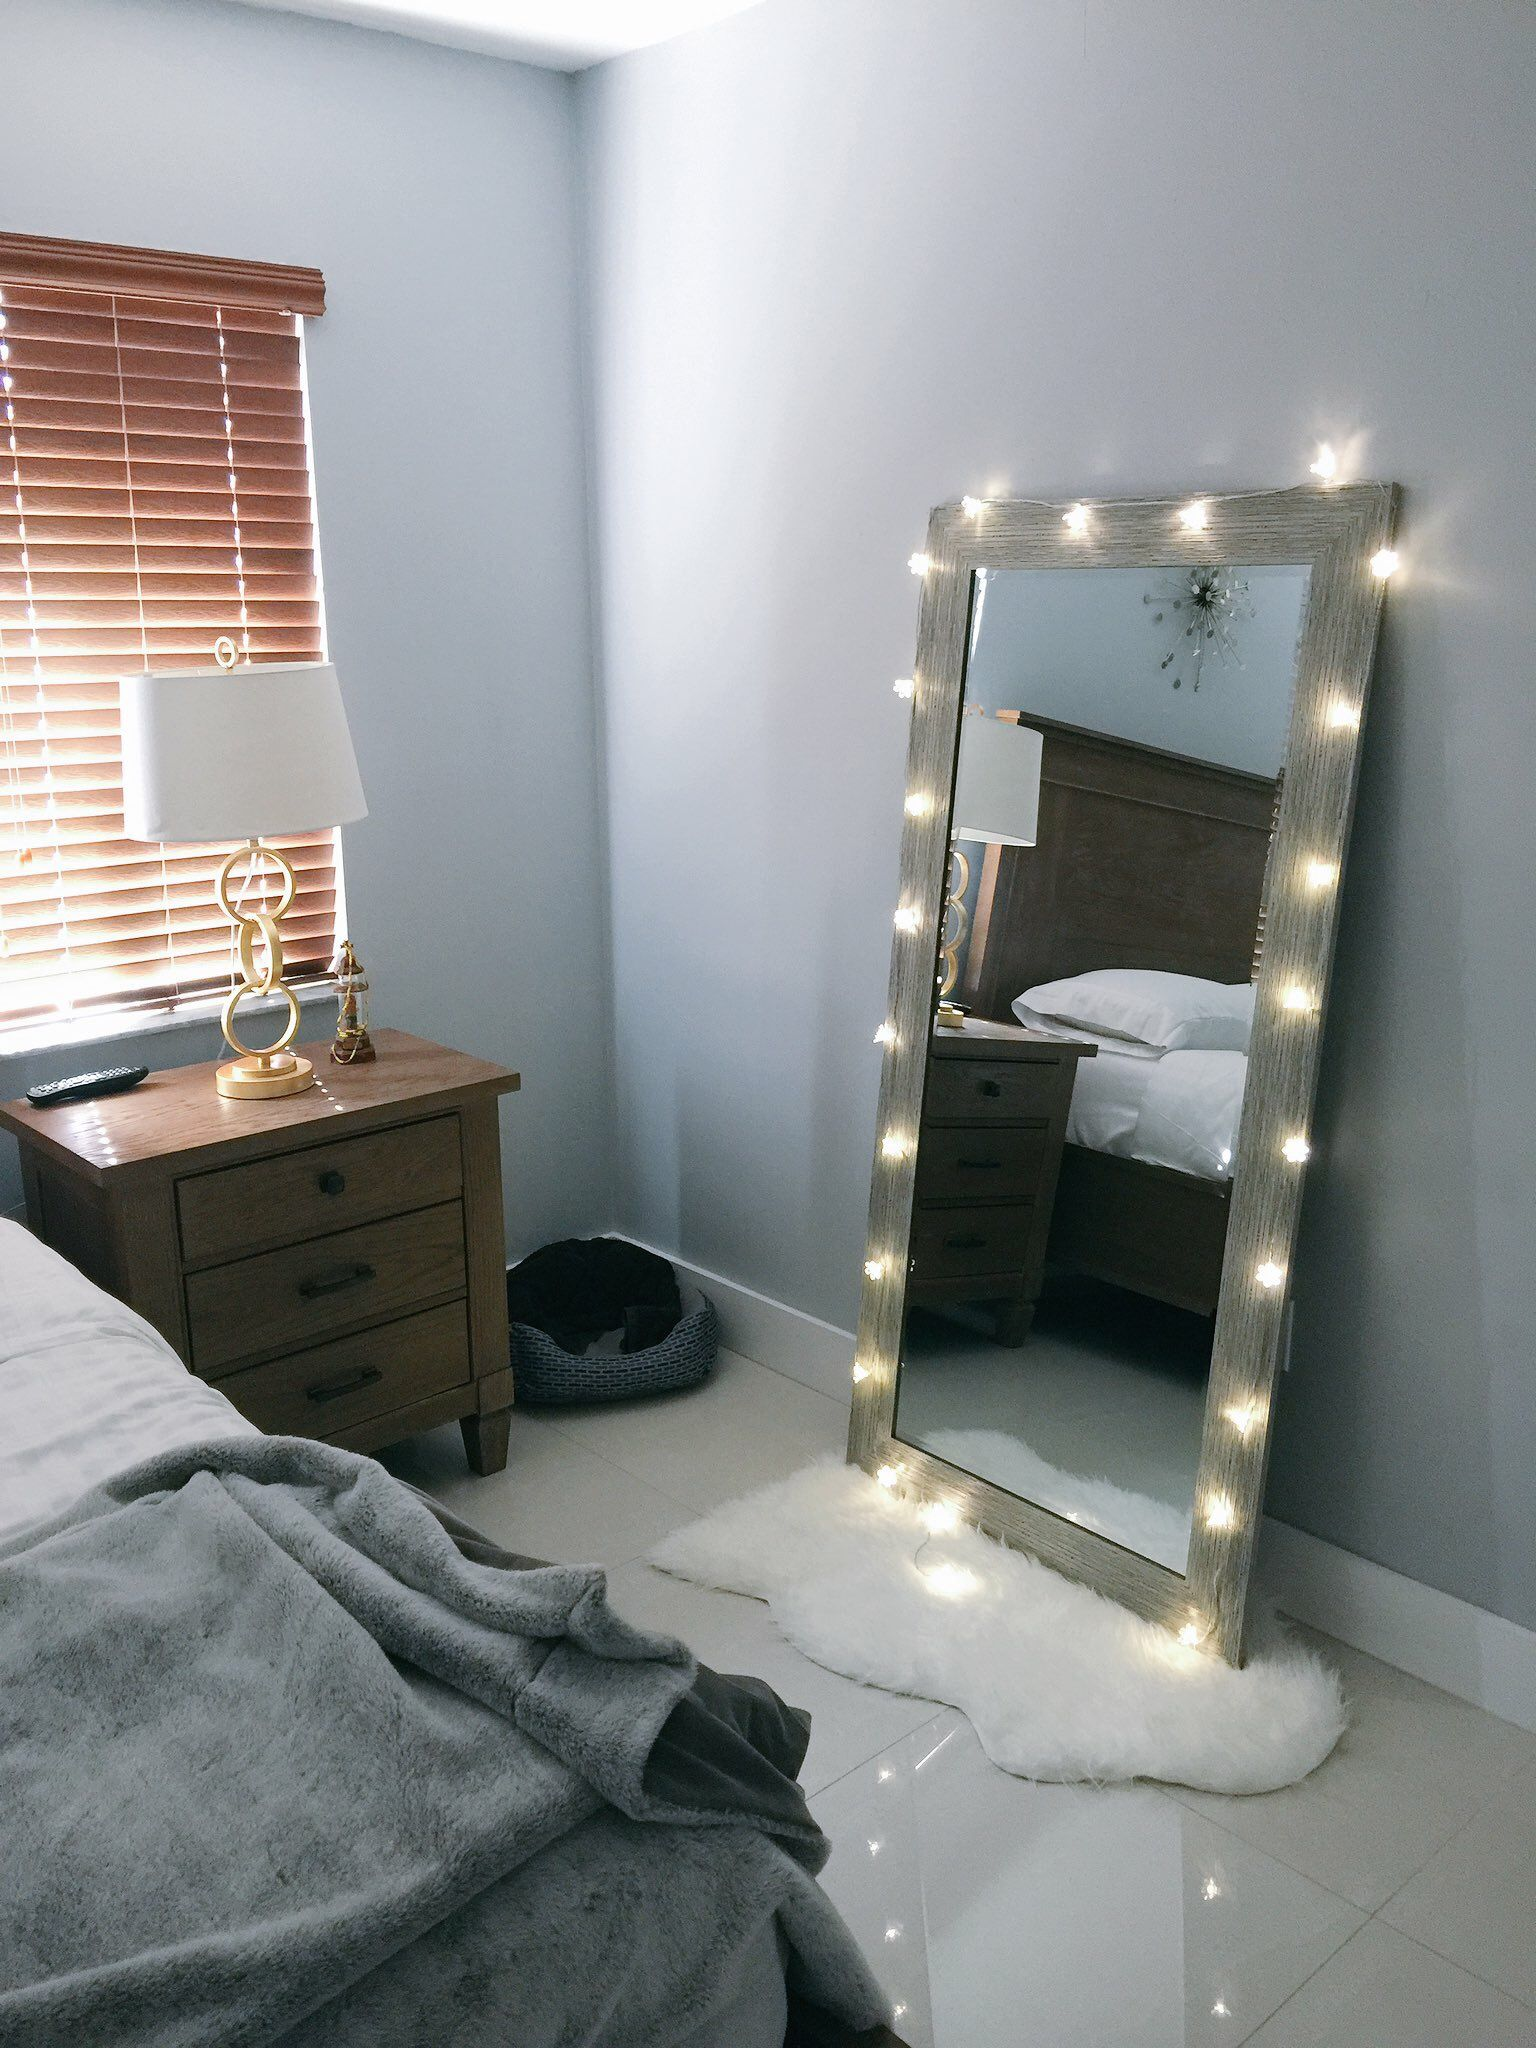 Pinterest Vivaciouslyv Instagram Ilove Vg Grey Wall Bedroom Mirrors Home